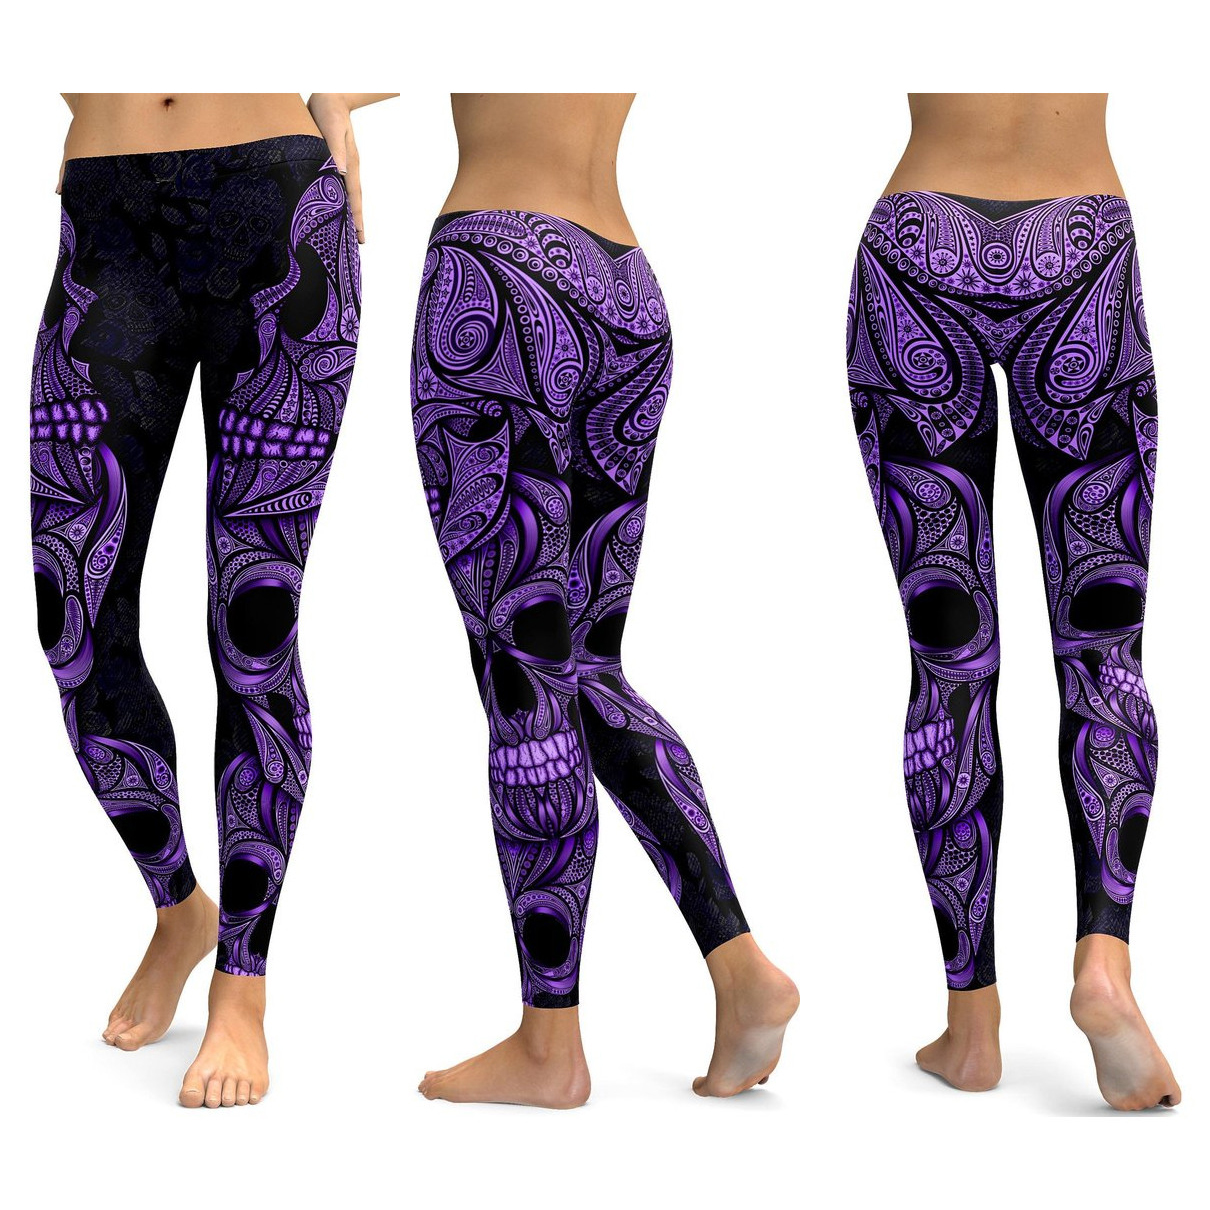 Skull Leggings Yoga Pants Women Sports Pants Fitness Running Sexy Push Up Gym Wear Elastic Slim Workout Leggings 33